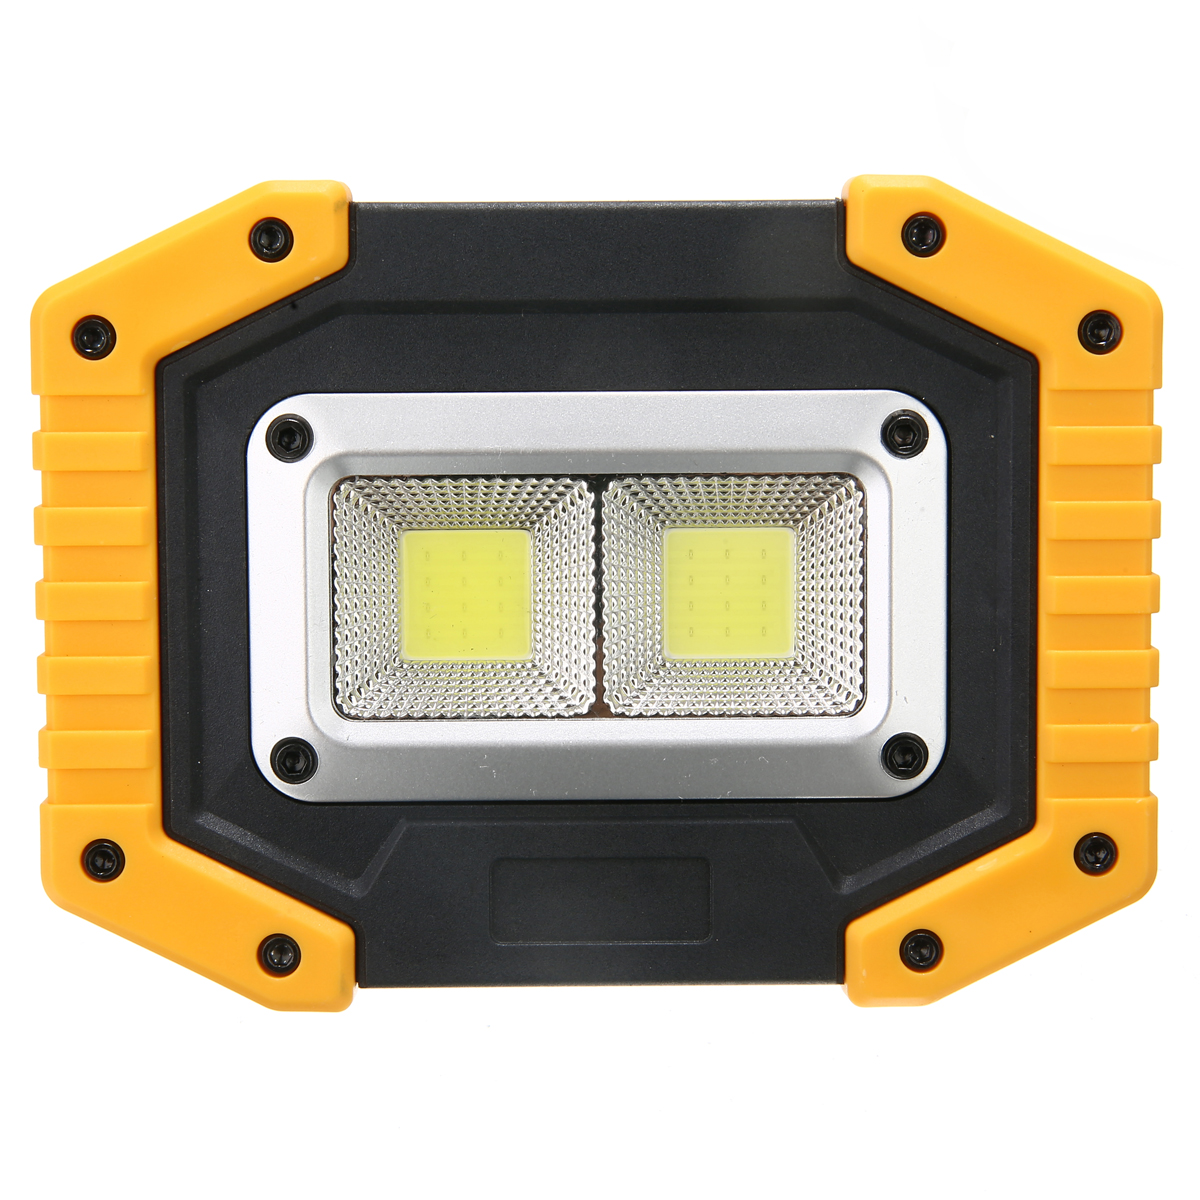 2 COB 30W 800LM Portable IP65 LED Flood Light Spot Lamp Outdoor Camping Hiking Emergency Lighting Spotlights